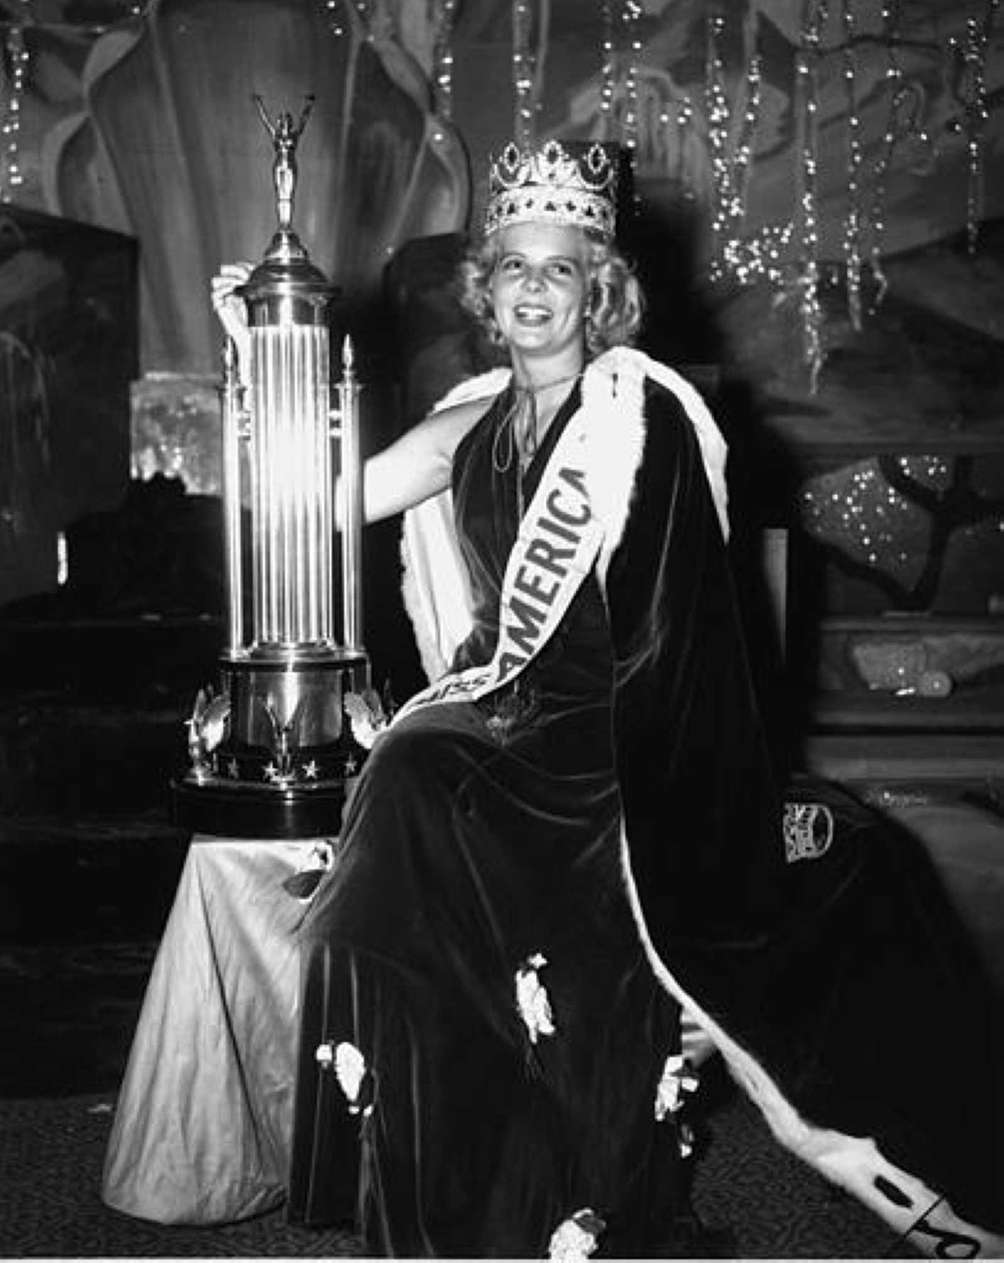 Bette Cooper after being crowned Miss America in